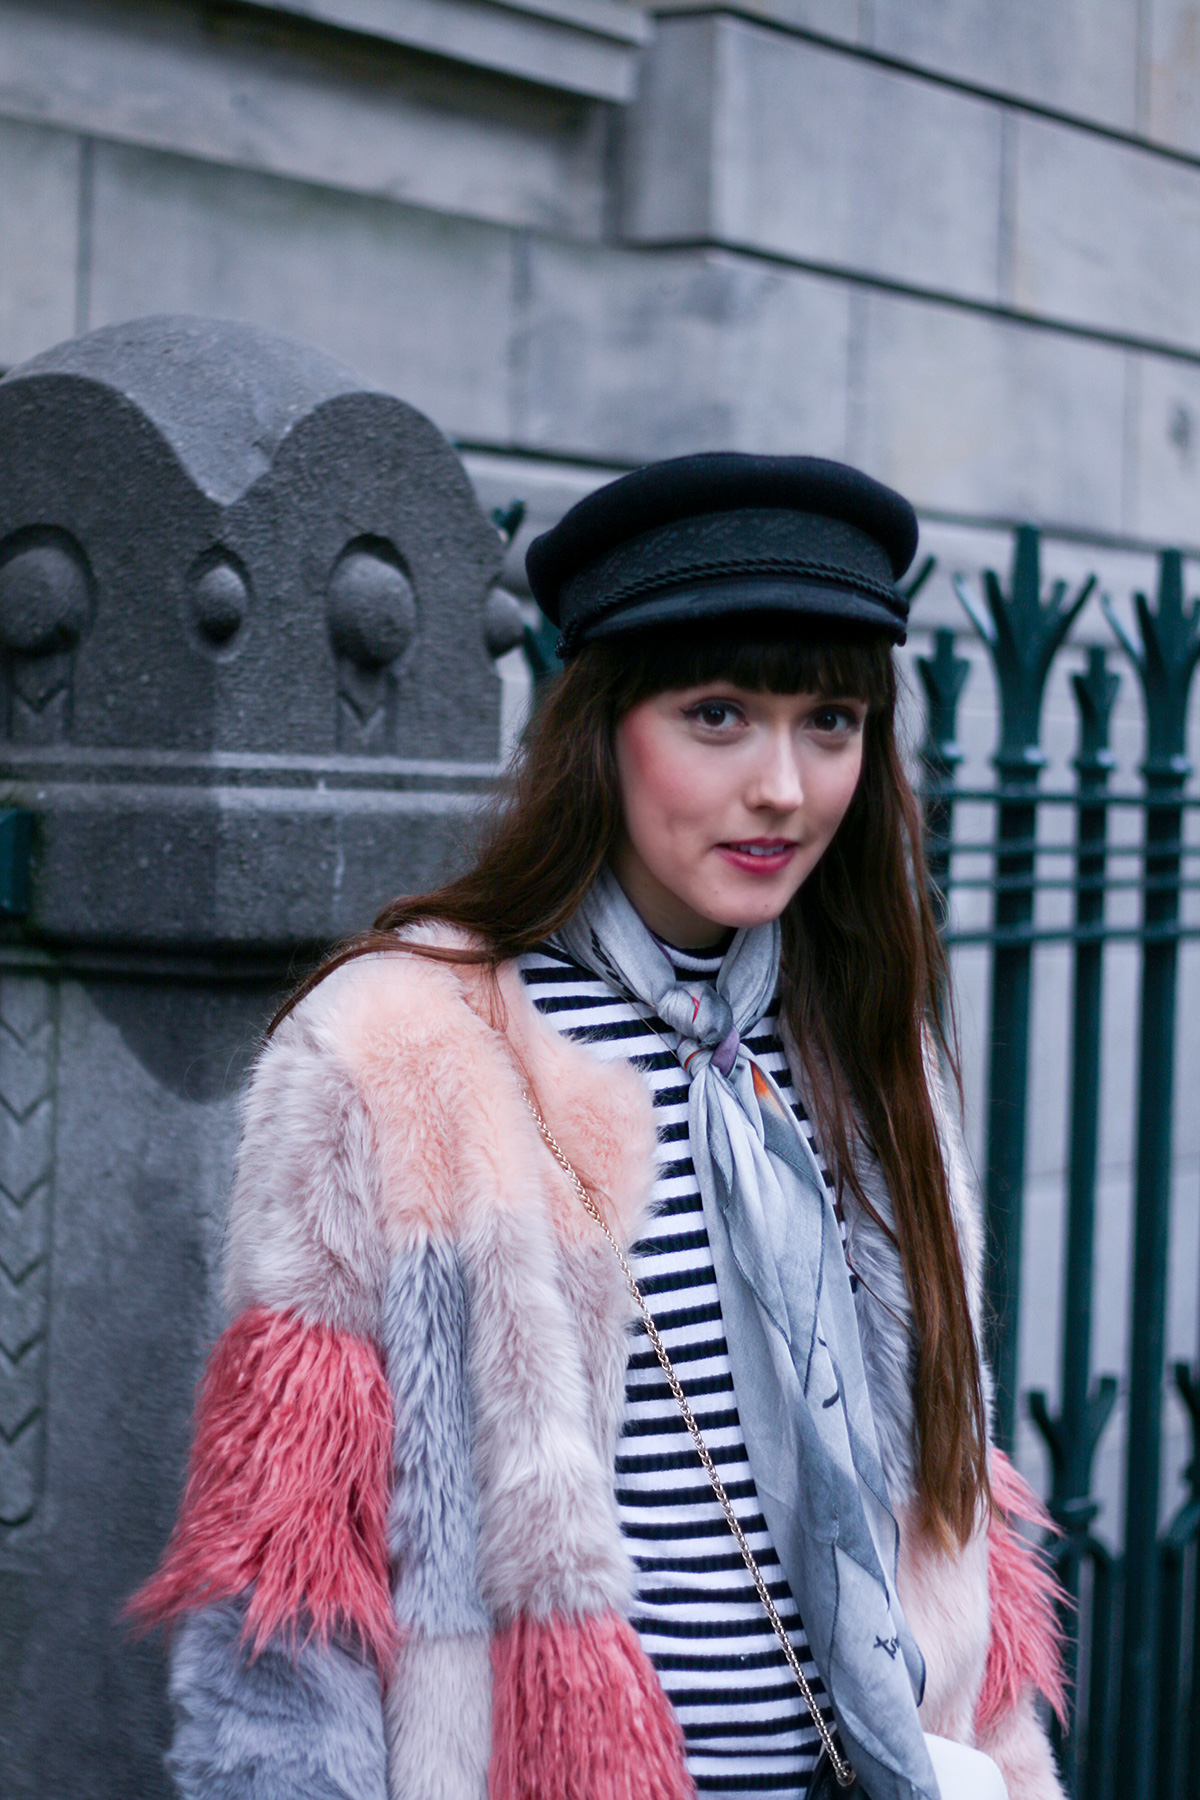 pink-faux-fur-coat-striped-shirt-winter-outfit